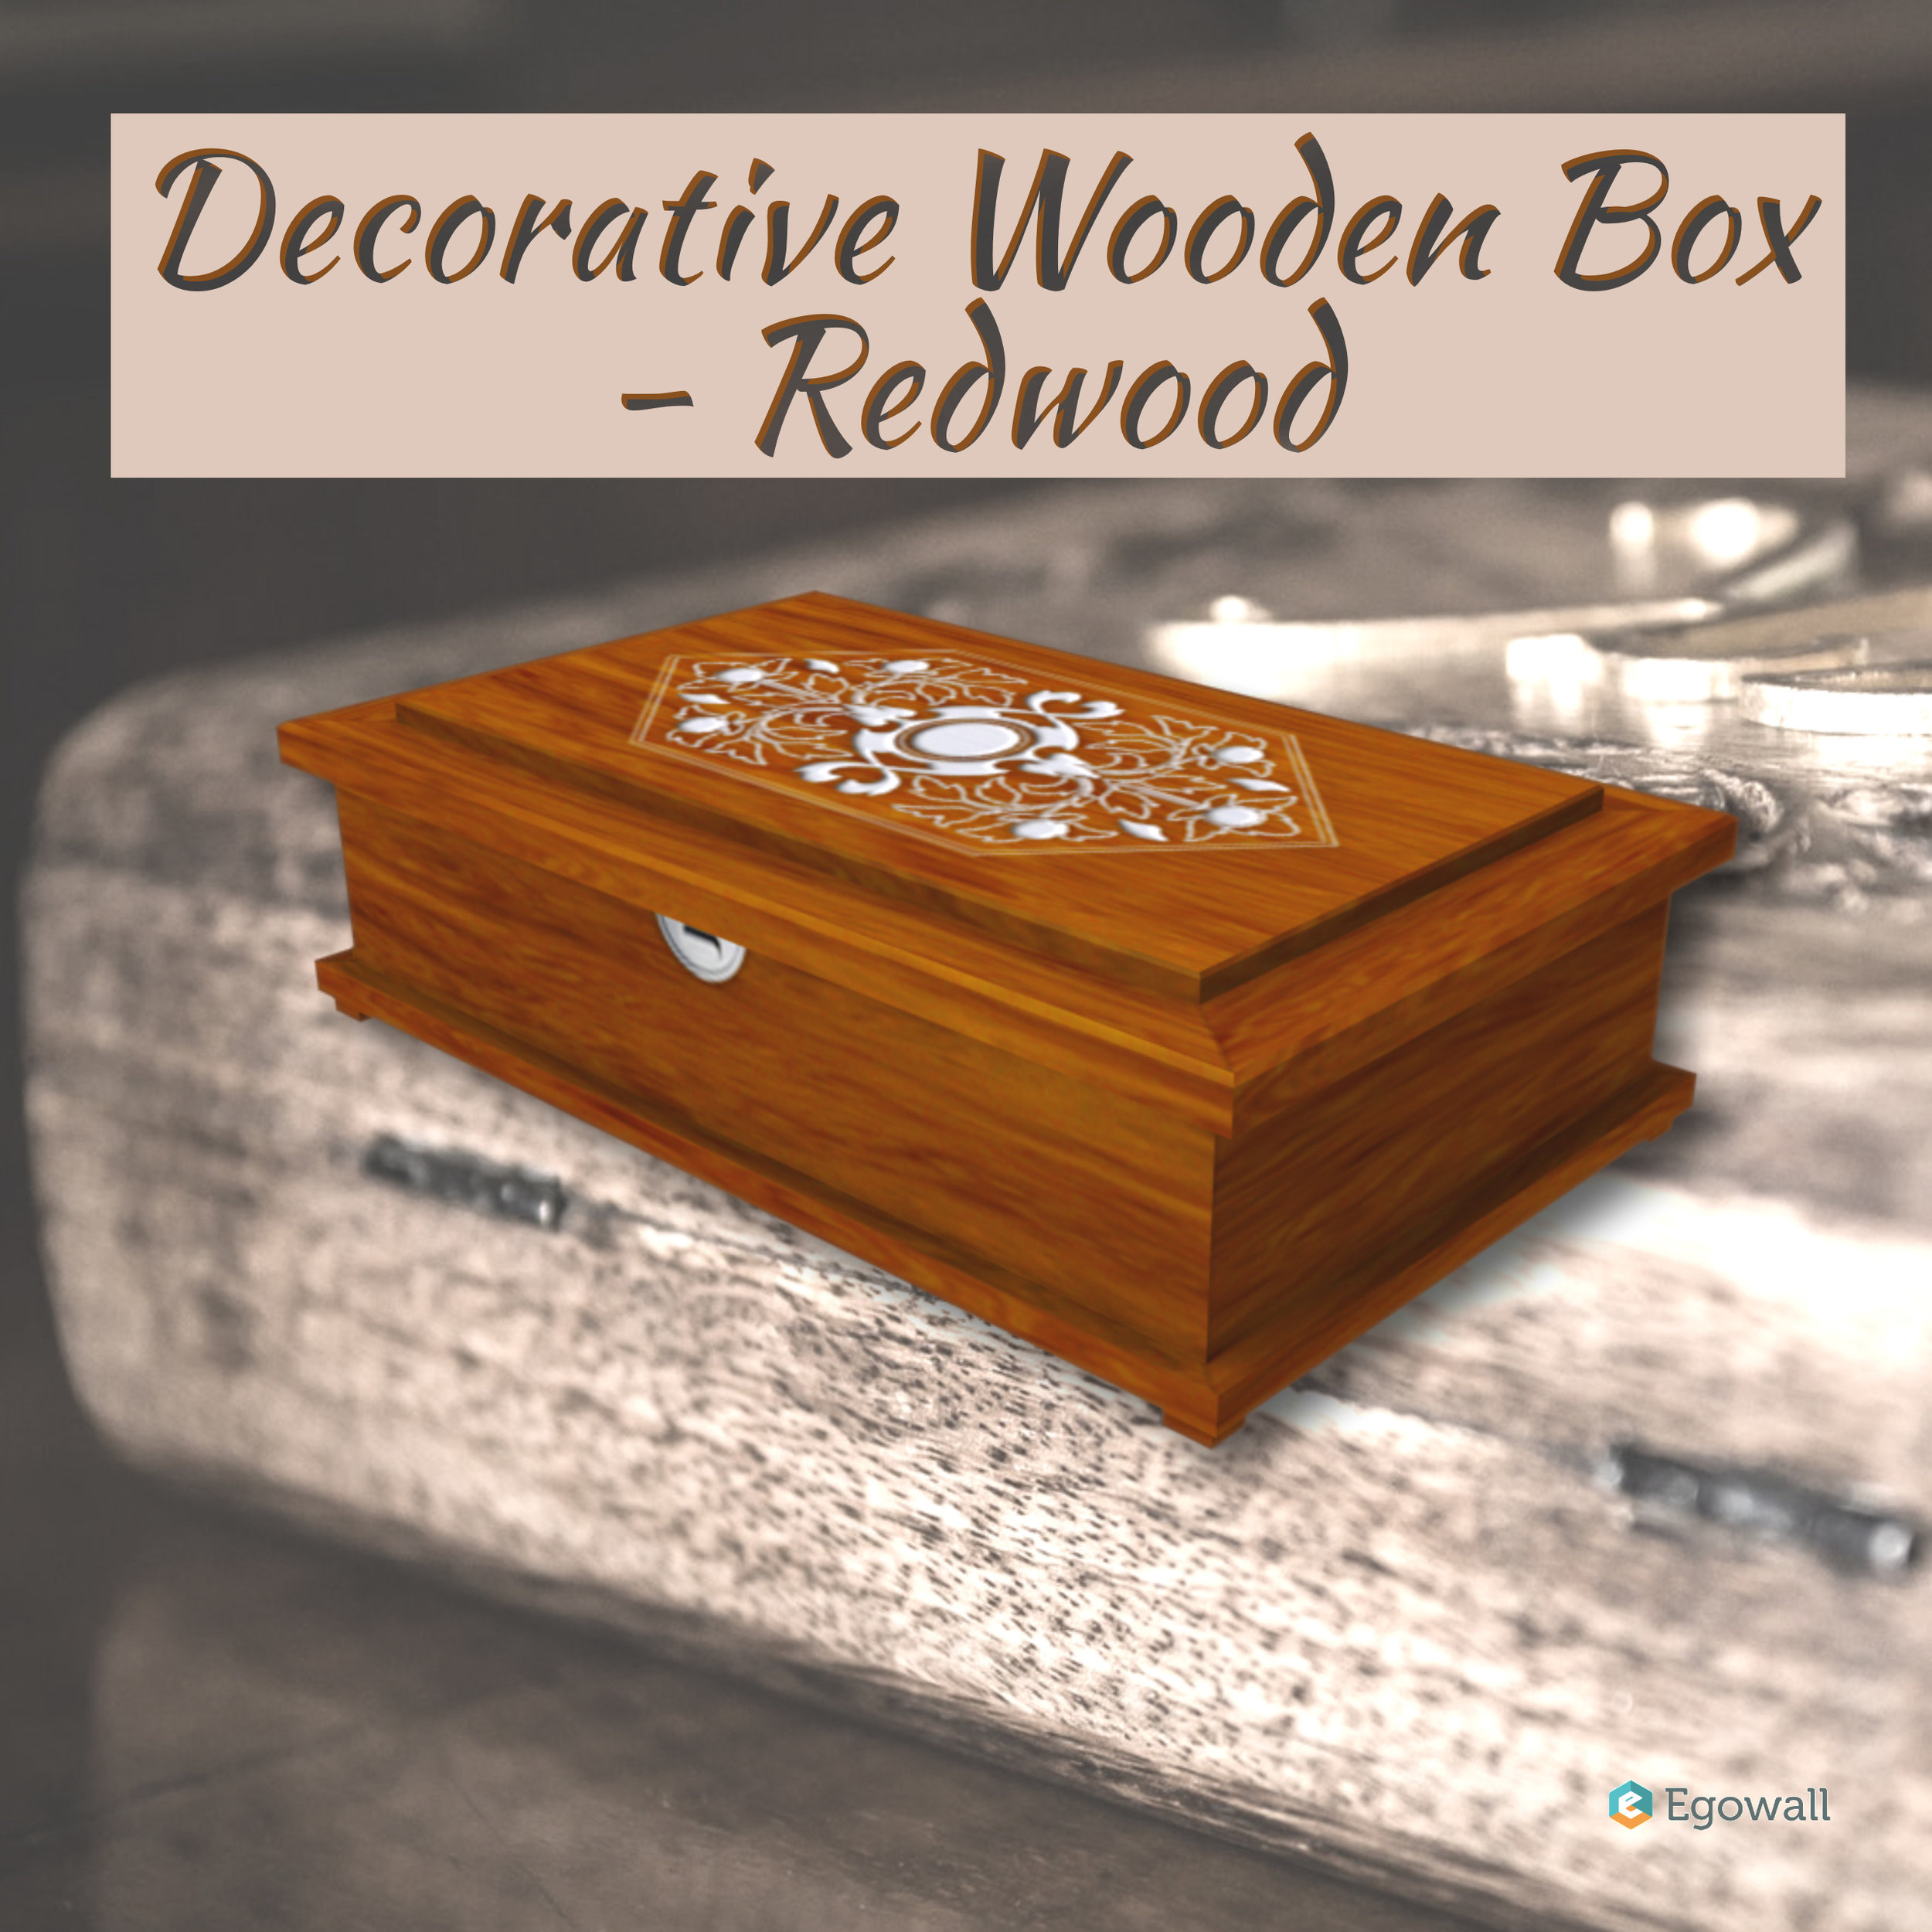 Decorative Wooden Box - Redwood.Instagram.jpg